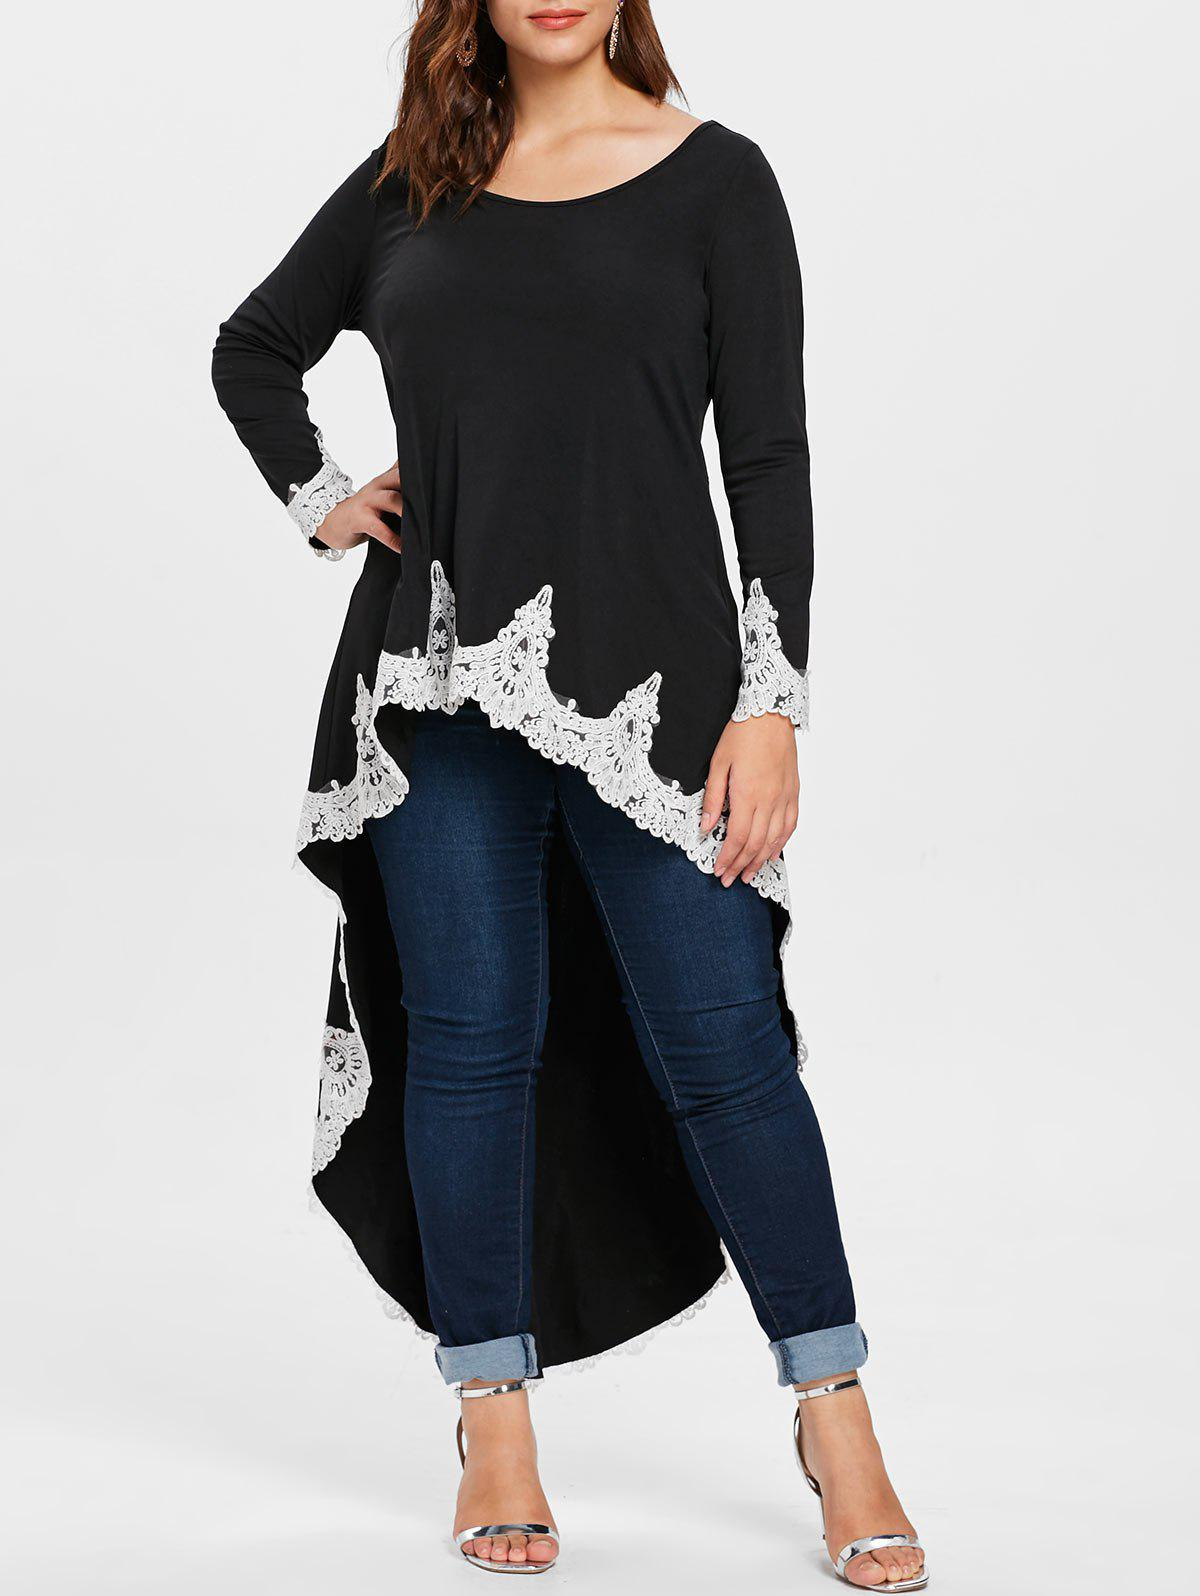 Buy Lace Panel Plus Size High Low T-shirt